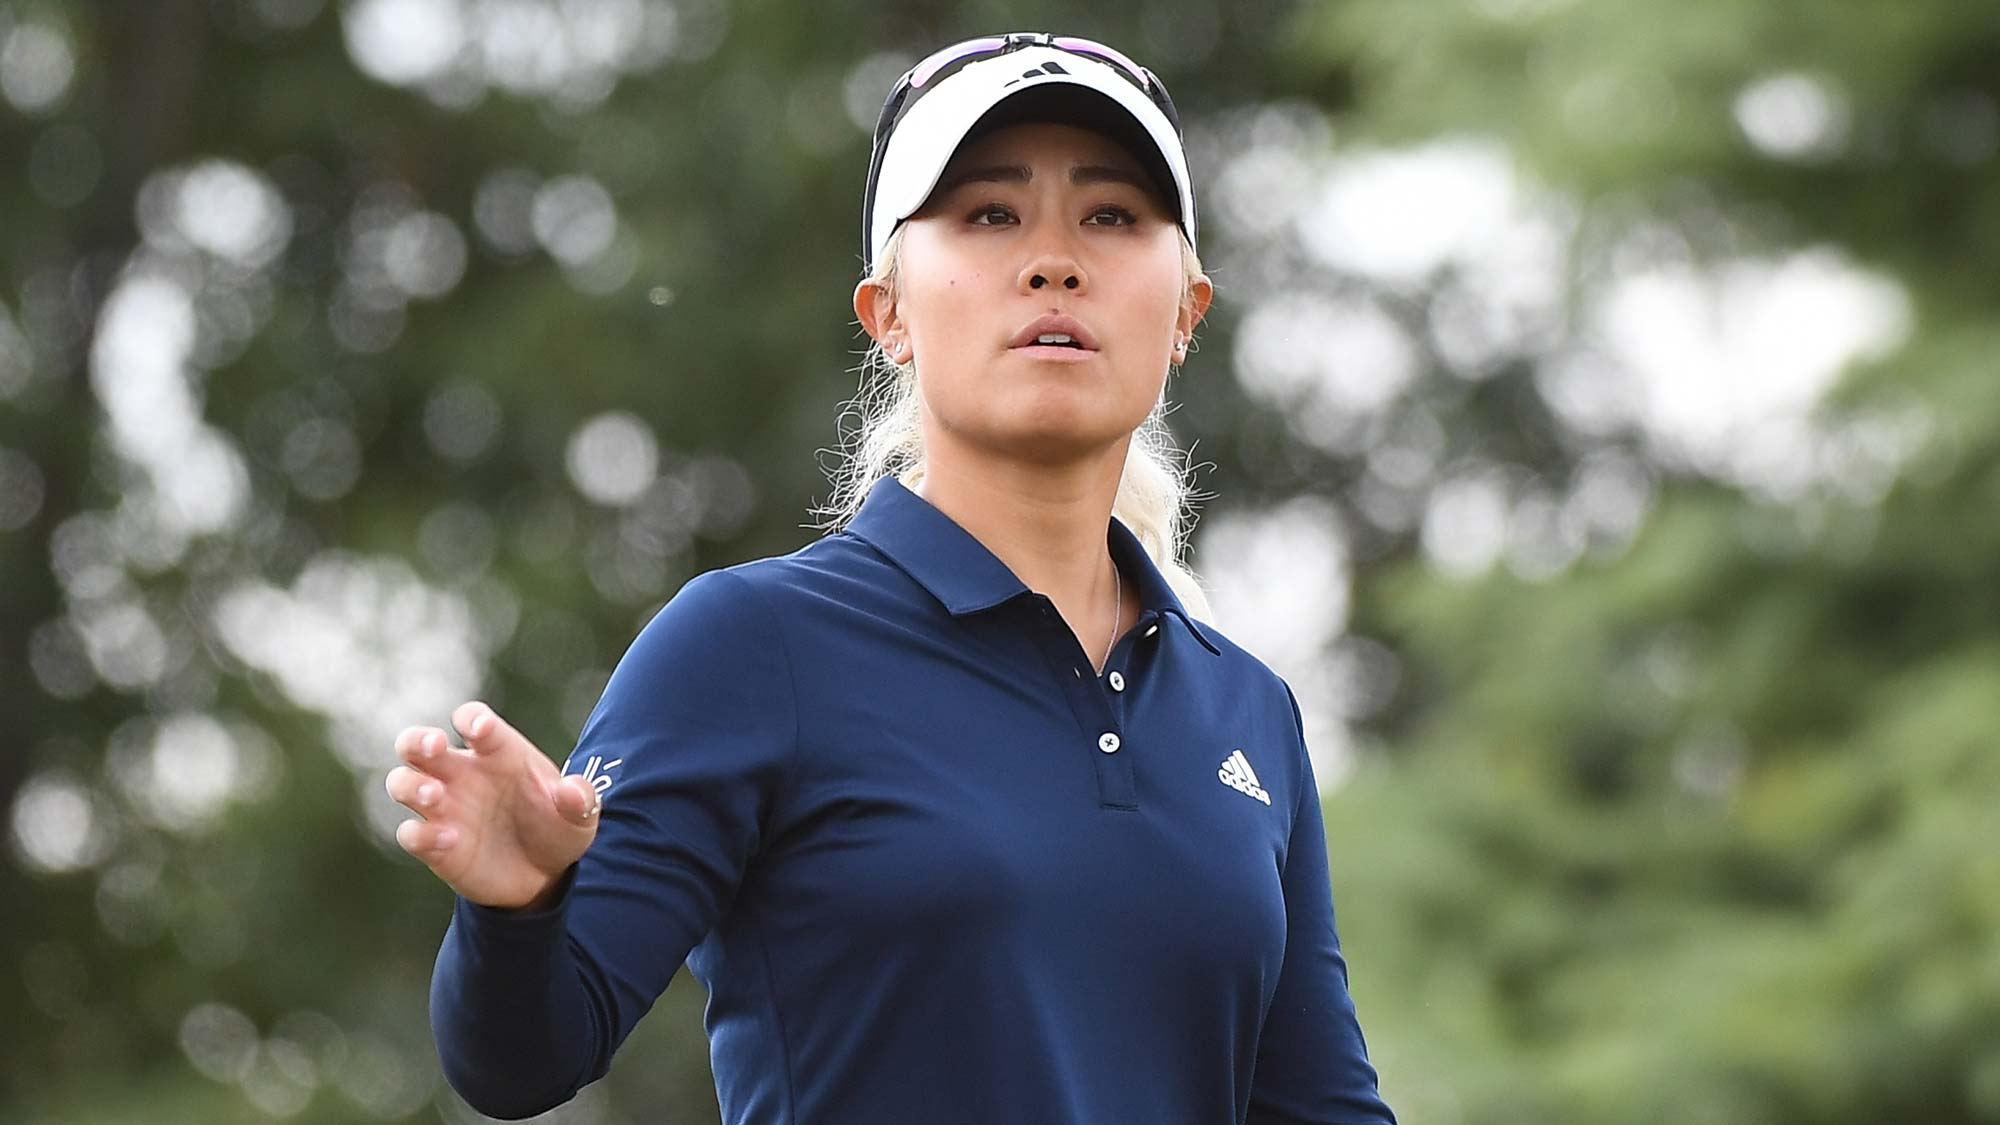 Danielle Kang of the United States plays a shot during the second round of the Buick LPGA Shanghai